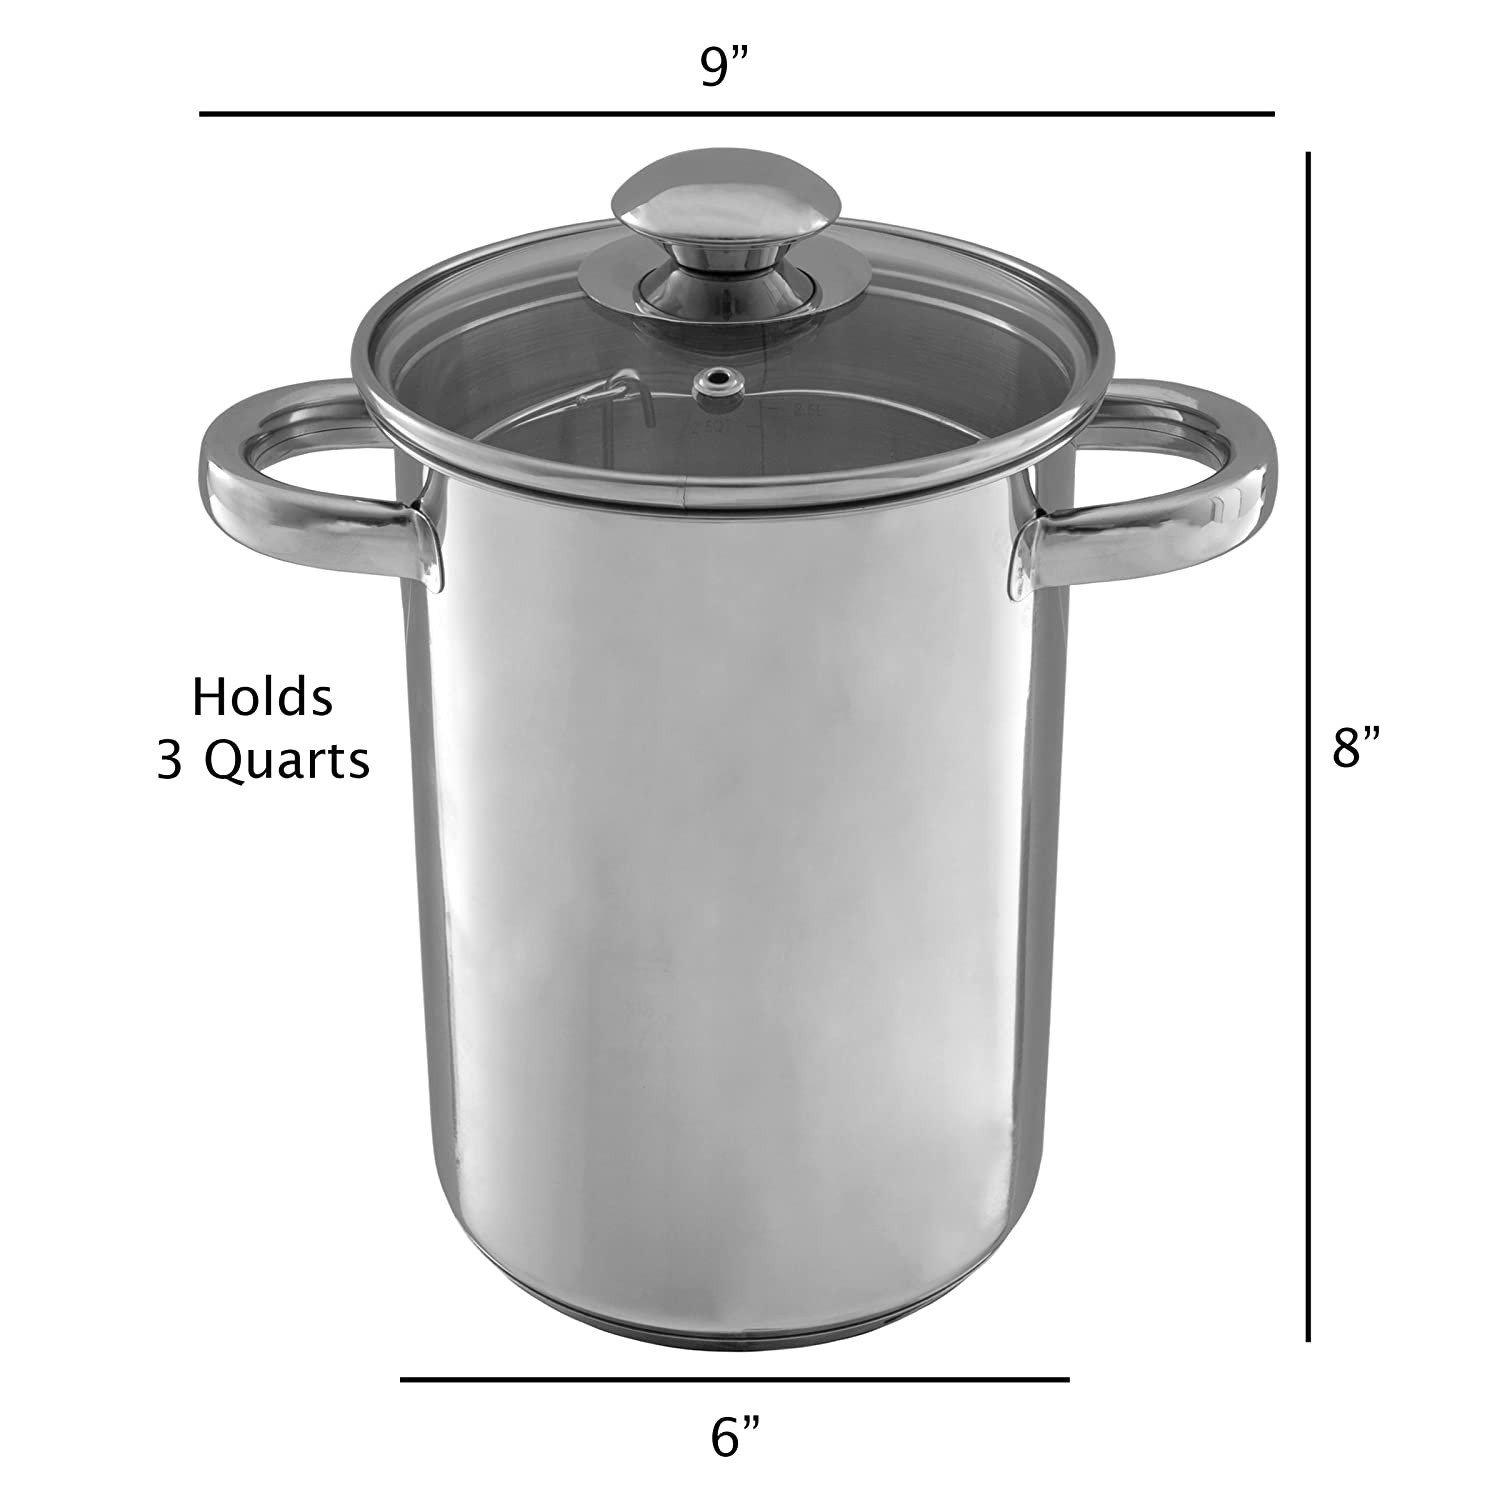 Classic Cuisine Stainless Steel 6 Cup Double Boiler – 1.5 Quart Saucepan 2-in-1 Combo with Vented Glass Lid-Kitchen Cookware with Measurements, Medium 82-KIT1052